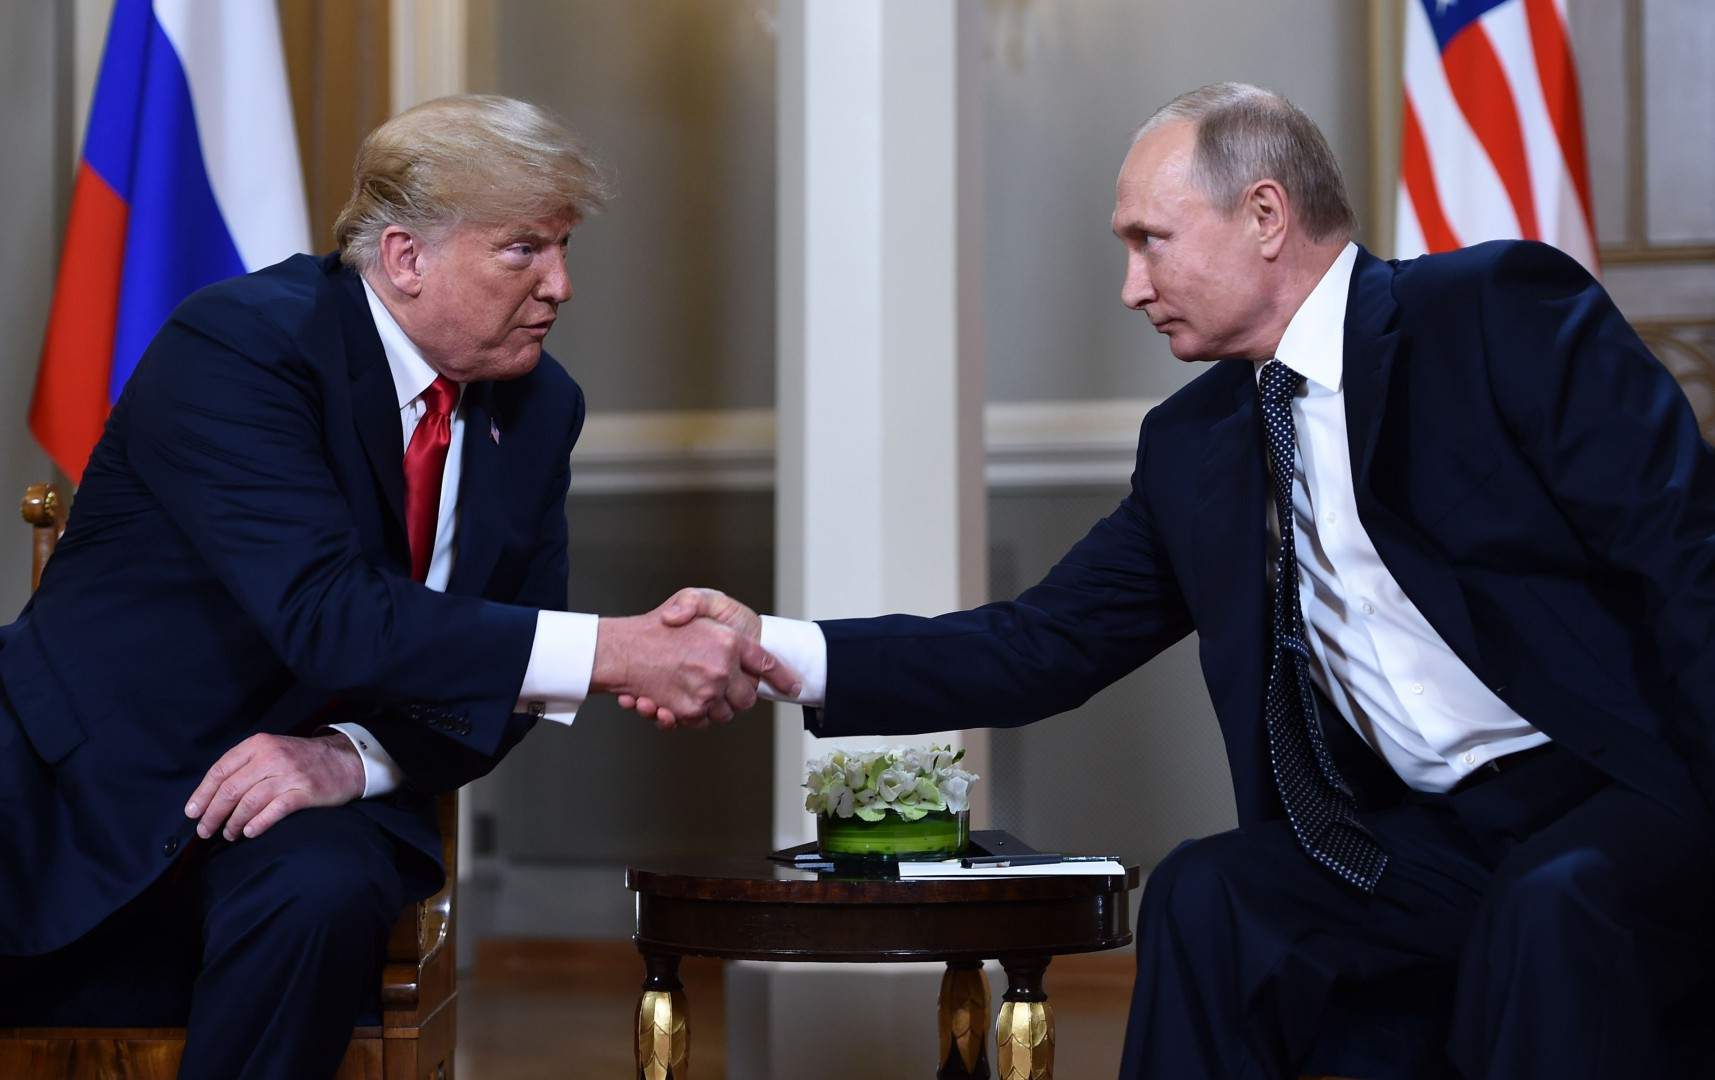 Russian President Vladimir Putin (R) and US President Donald Trump shake hands before a meeting in Helsinki, on July 16, 2018. / AFP PHOTO / Brendan Smialowski